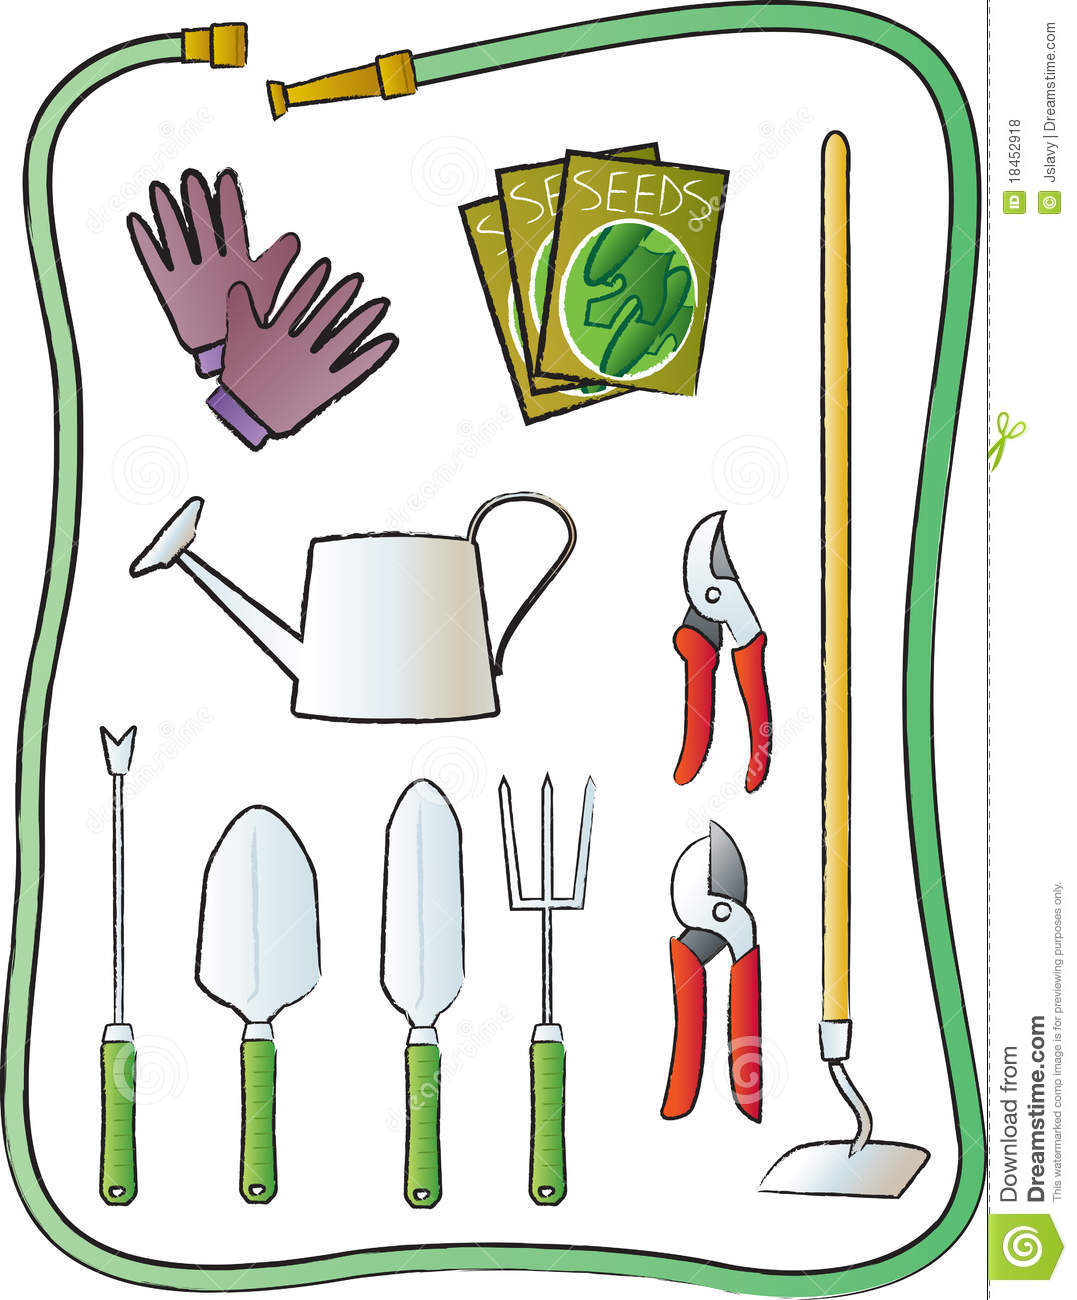 Gardening tools royalty free stock photos image 18452918 for Gardening tools clipart